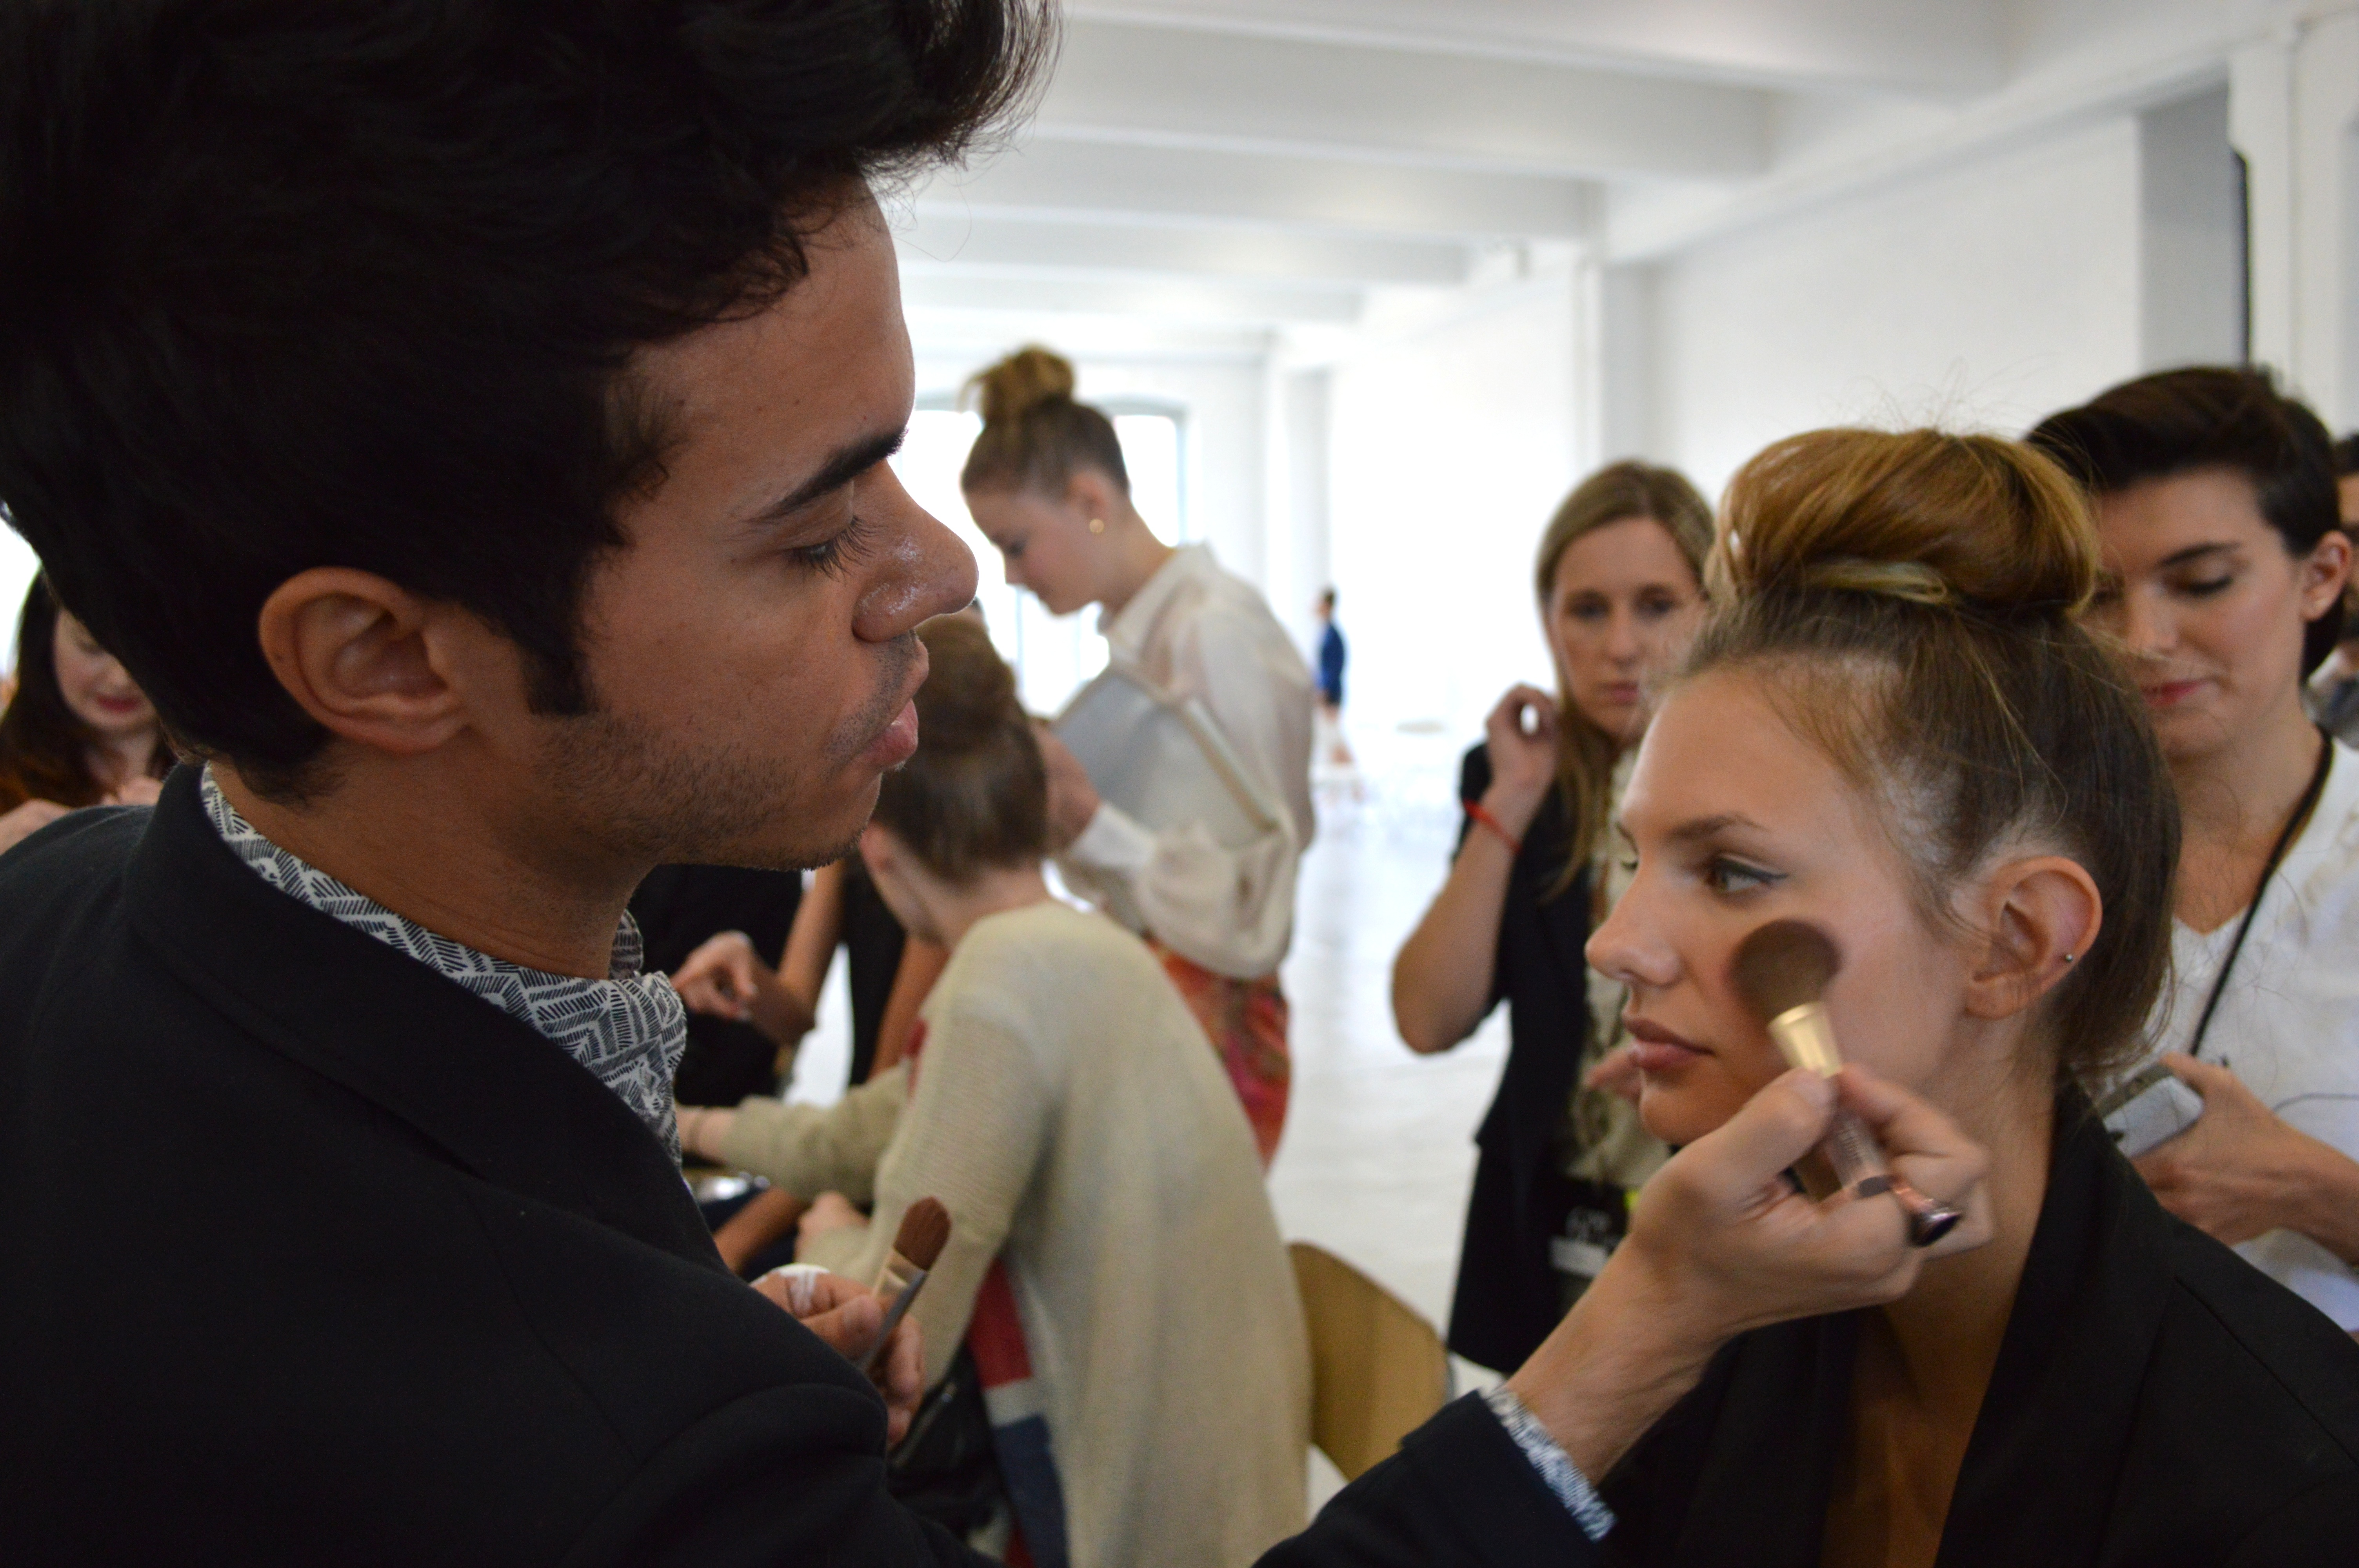 Lead makeup artist Neil Scibelli working his magic for Jouer Cosmetics backstage at Kate Spade New York.